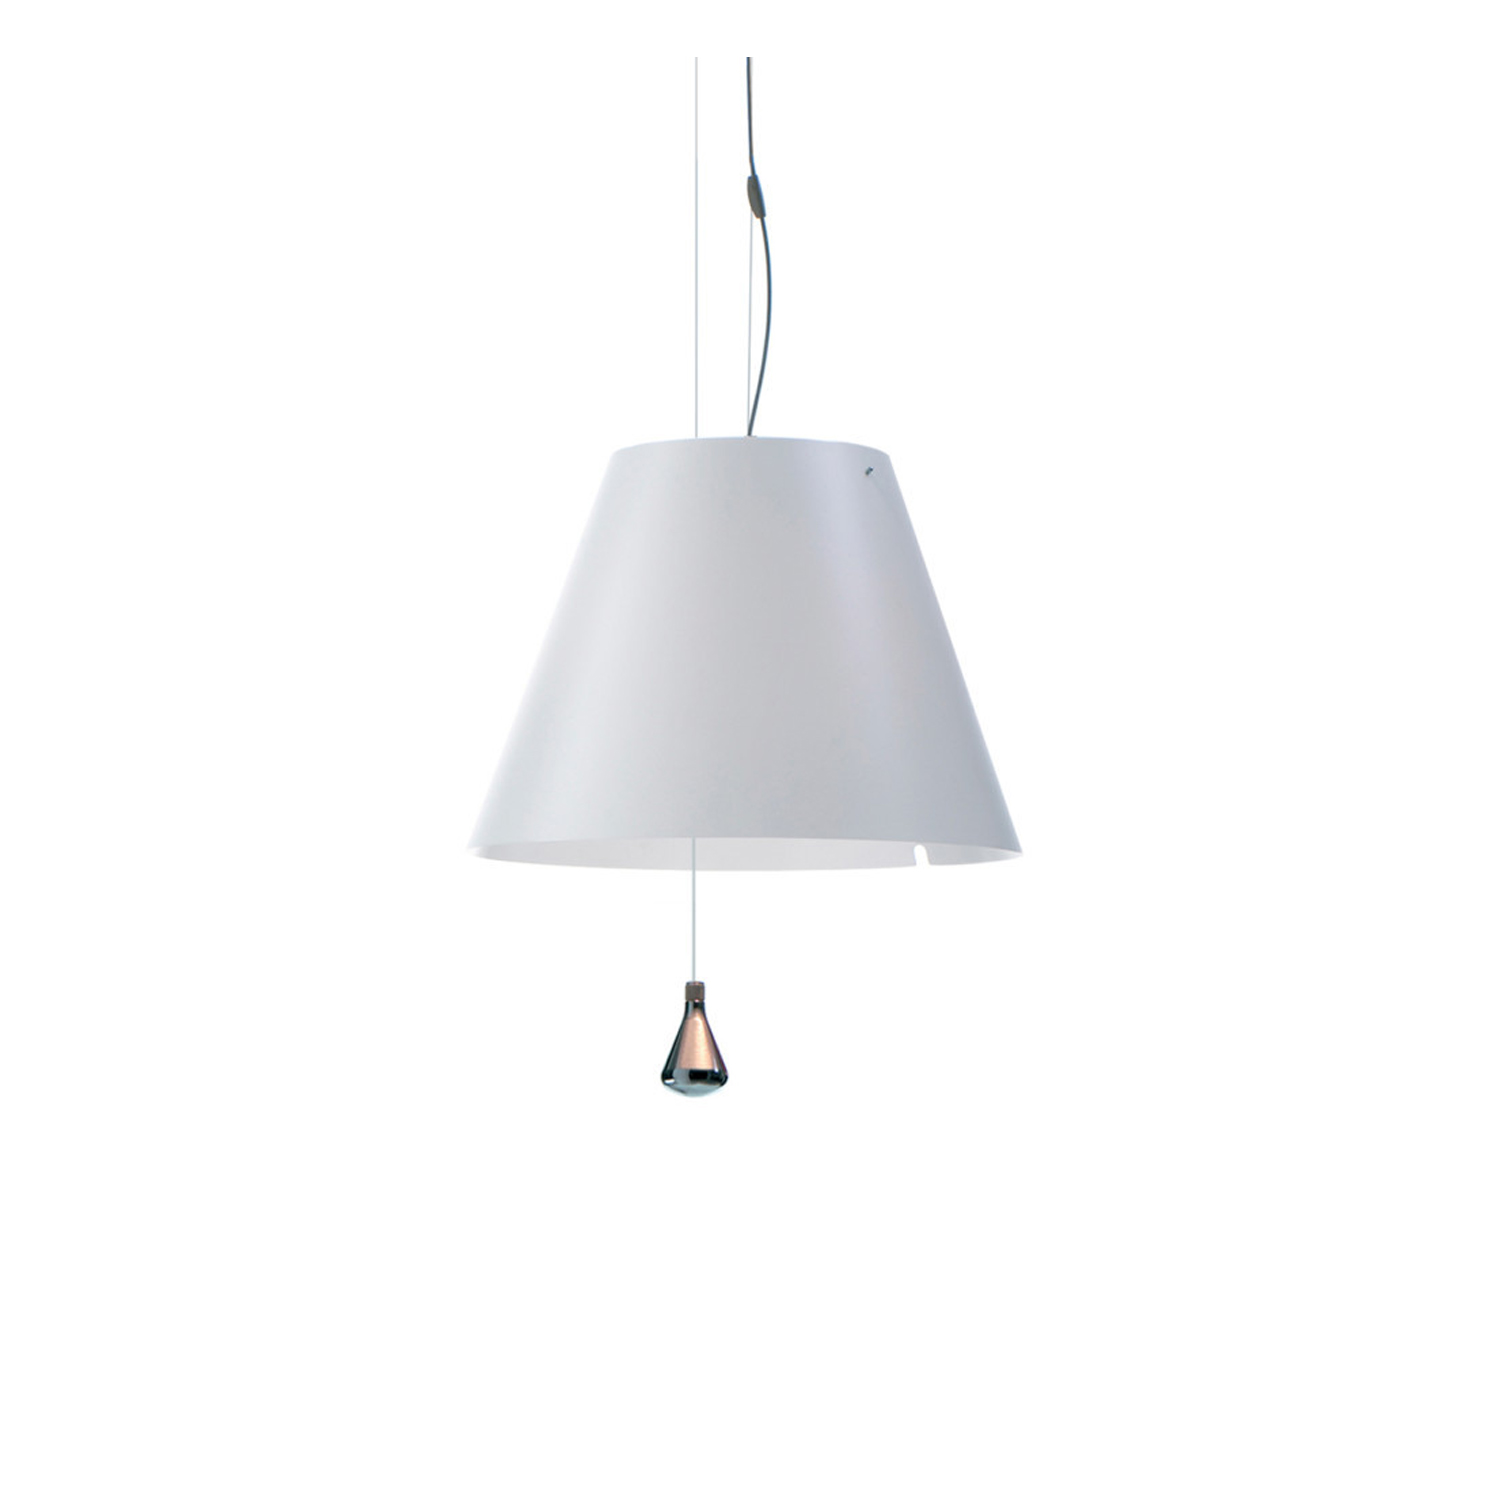 Costanza Up and Down Suspension Lamp